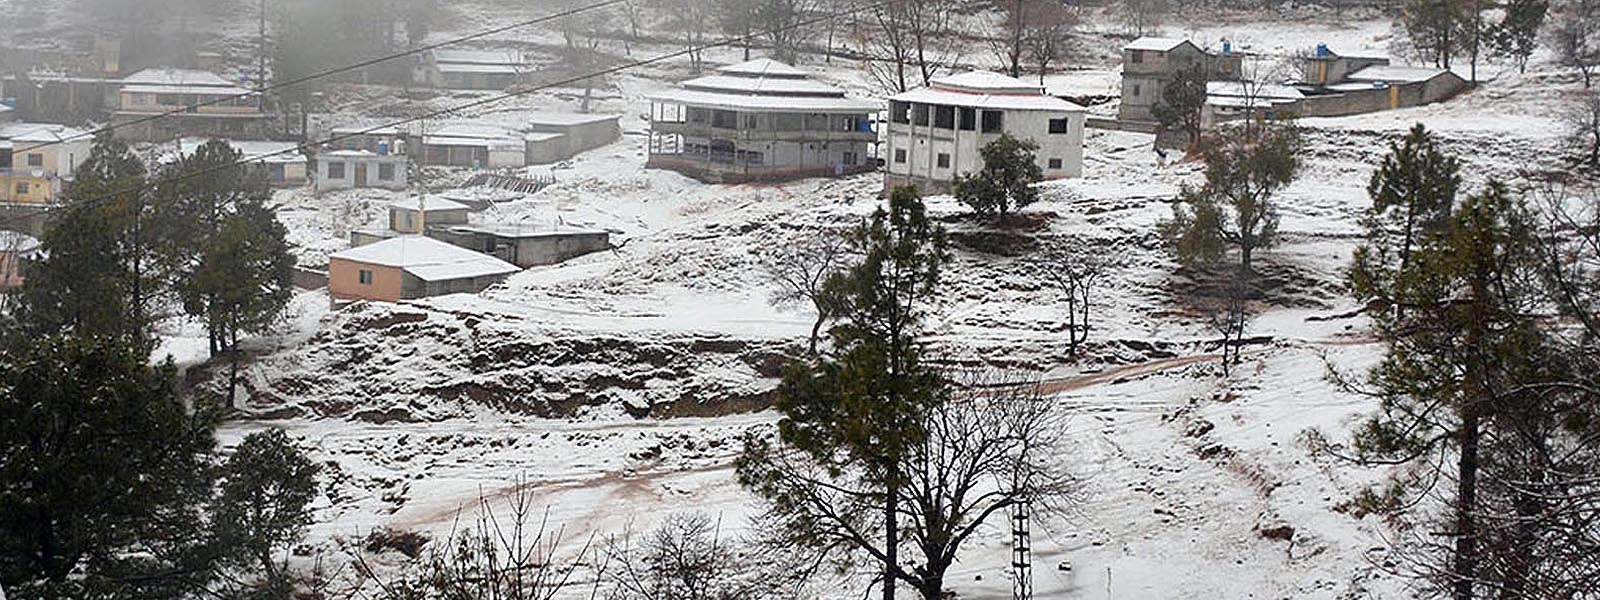 A glimpse into snow-engulfed northern region of Pakistan